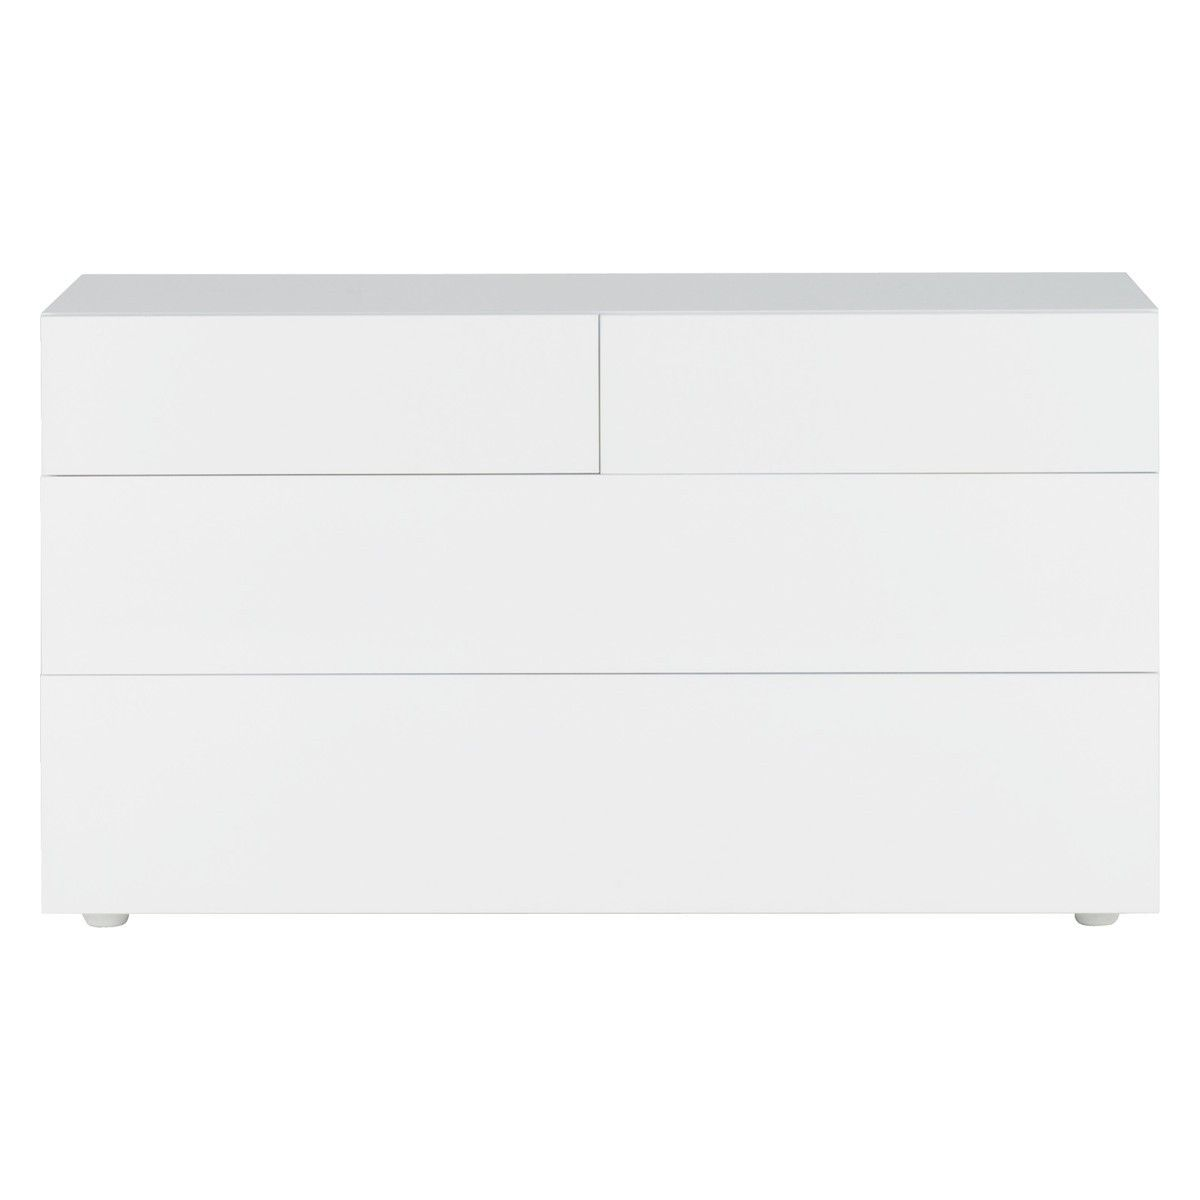 perouse white 4 drawer chest 140cm width drawers white drawers